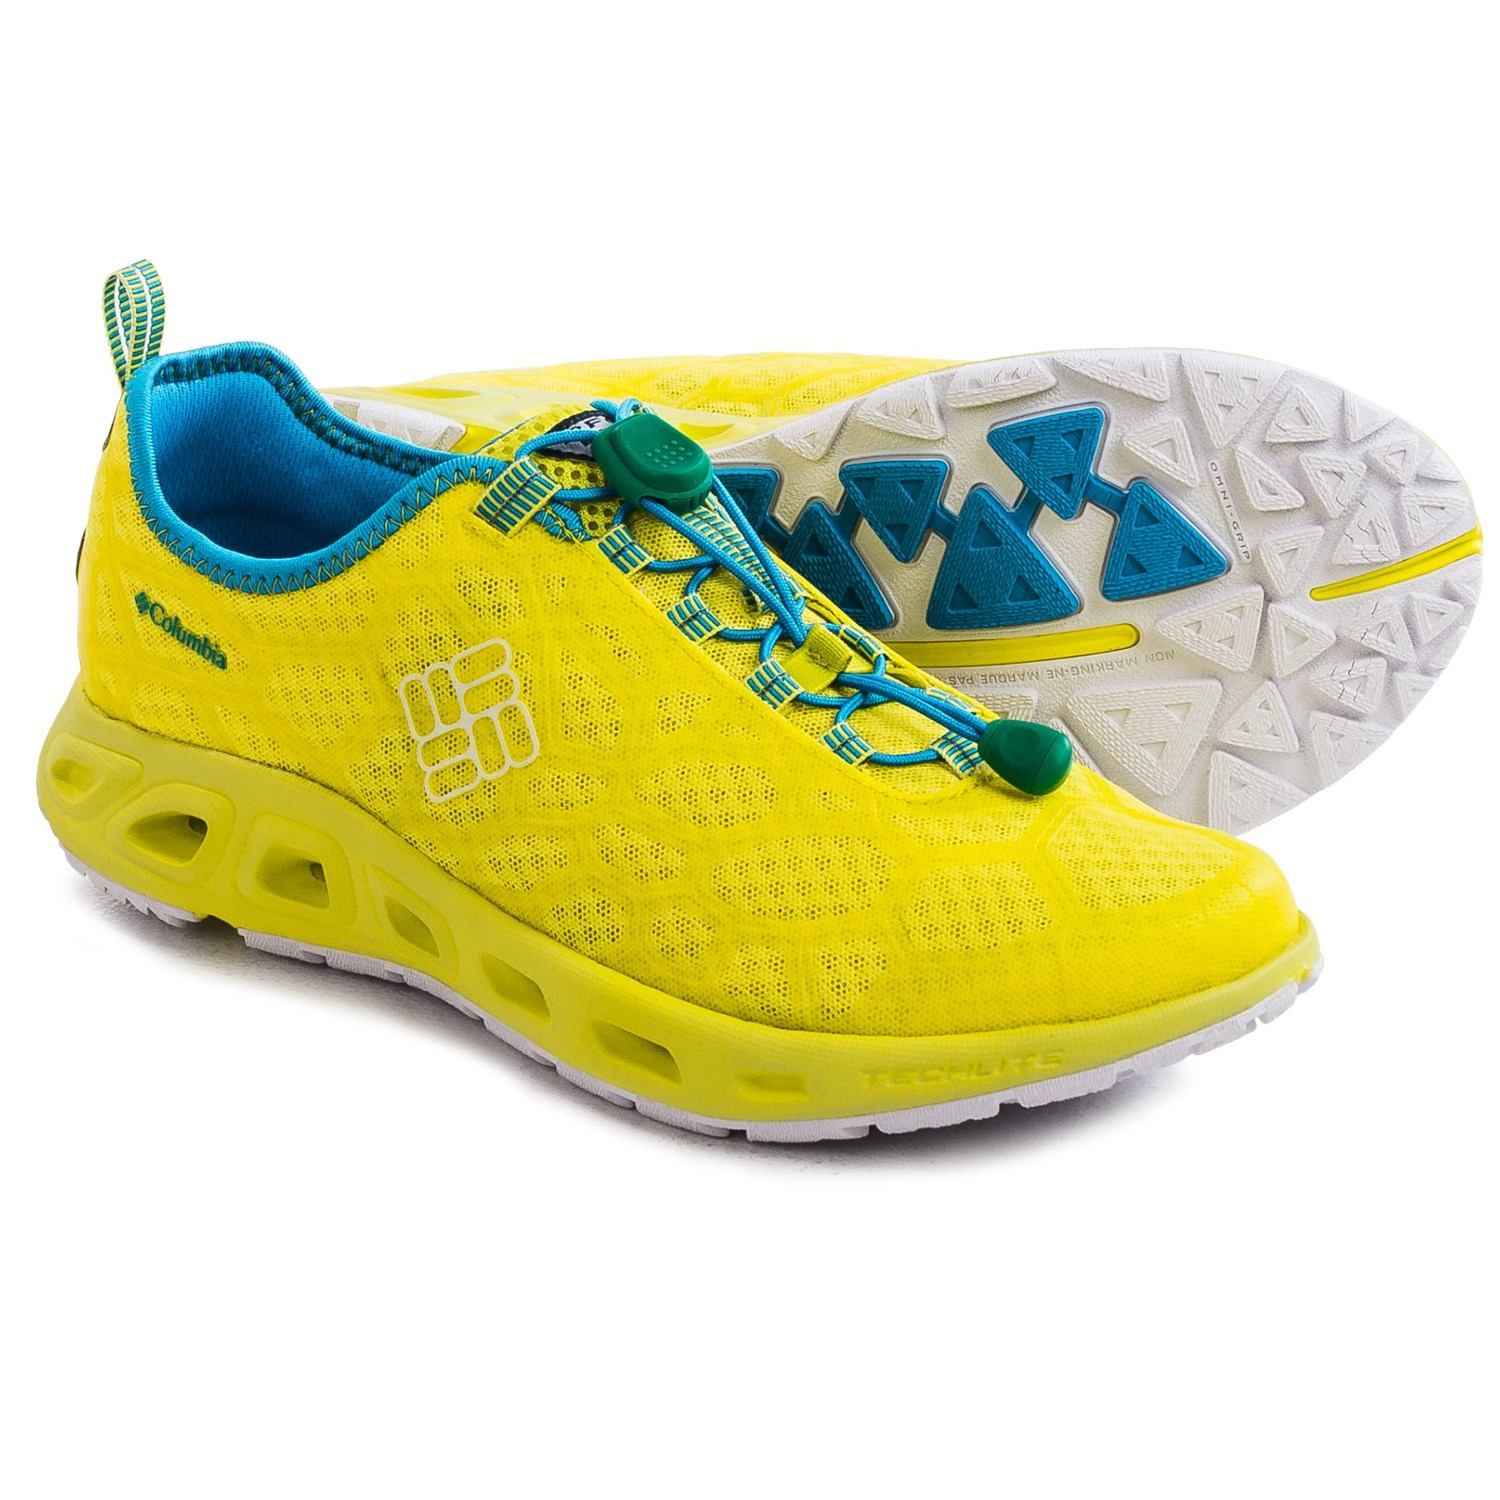 Columbia Megavent Water Shoes Size